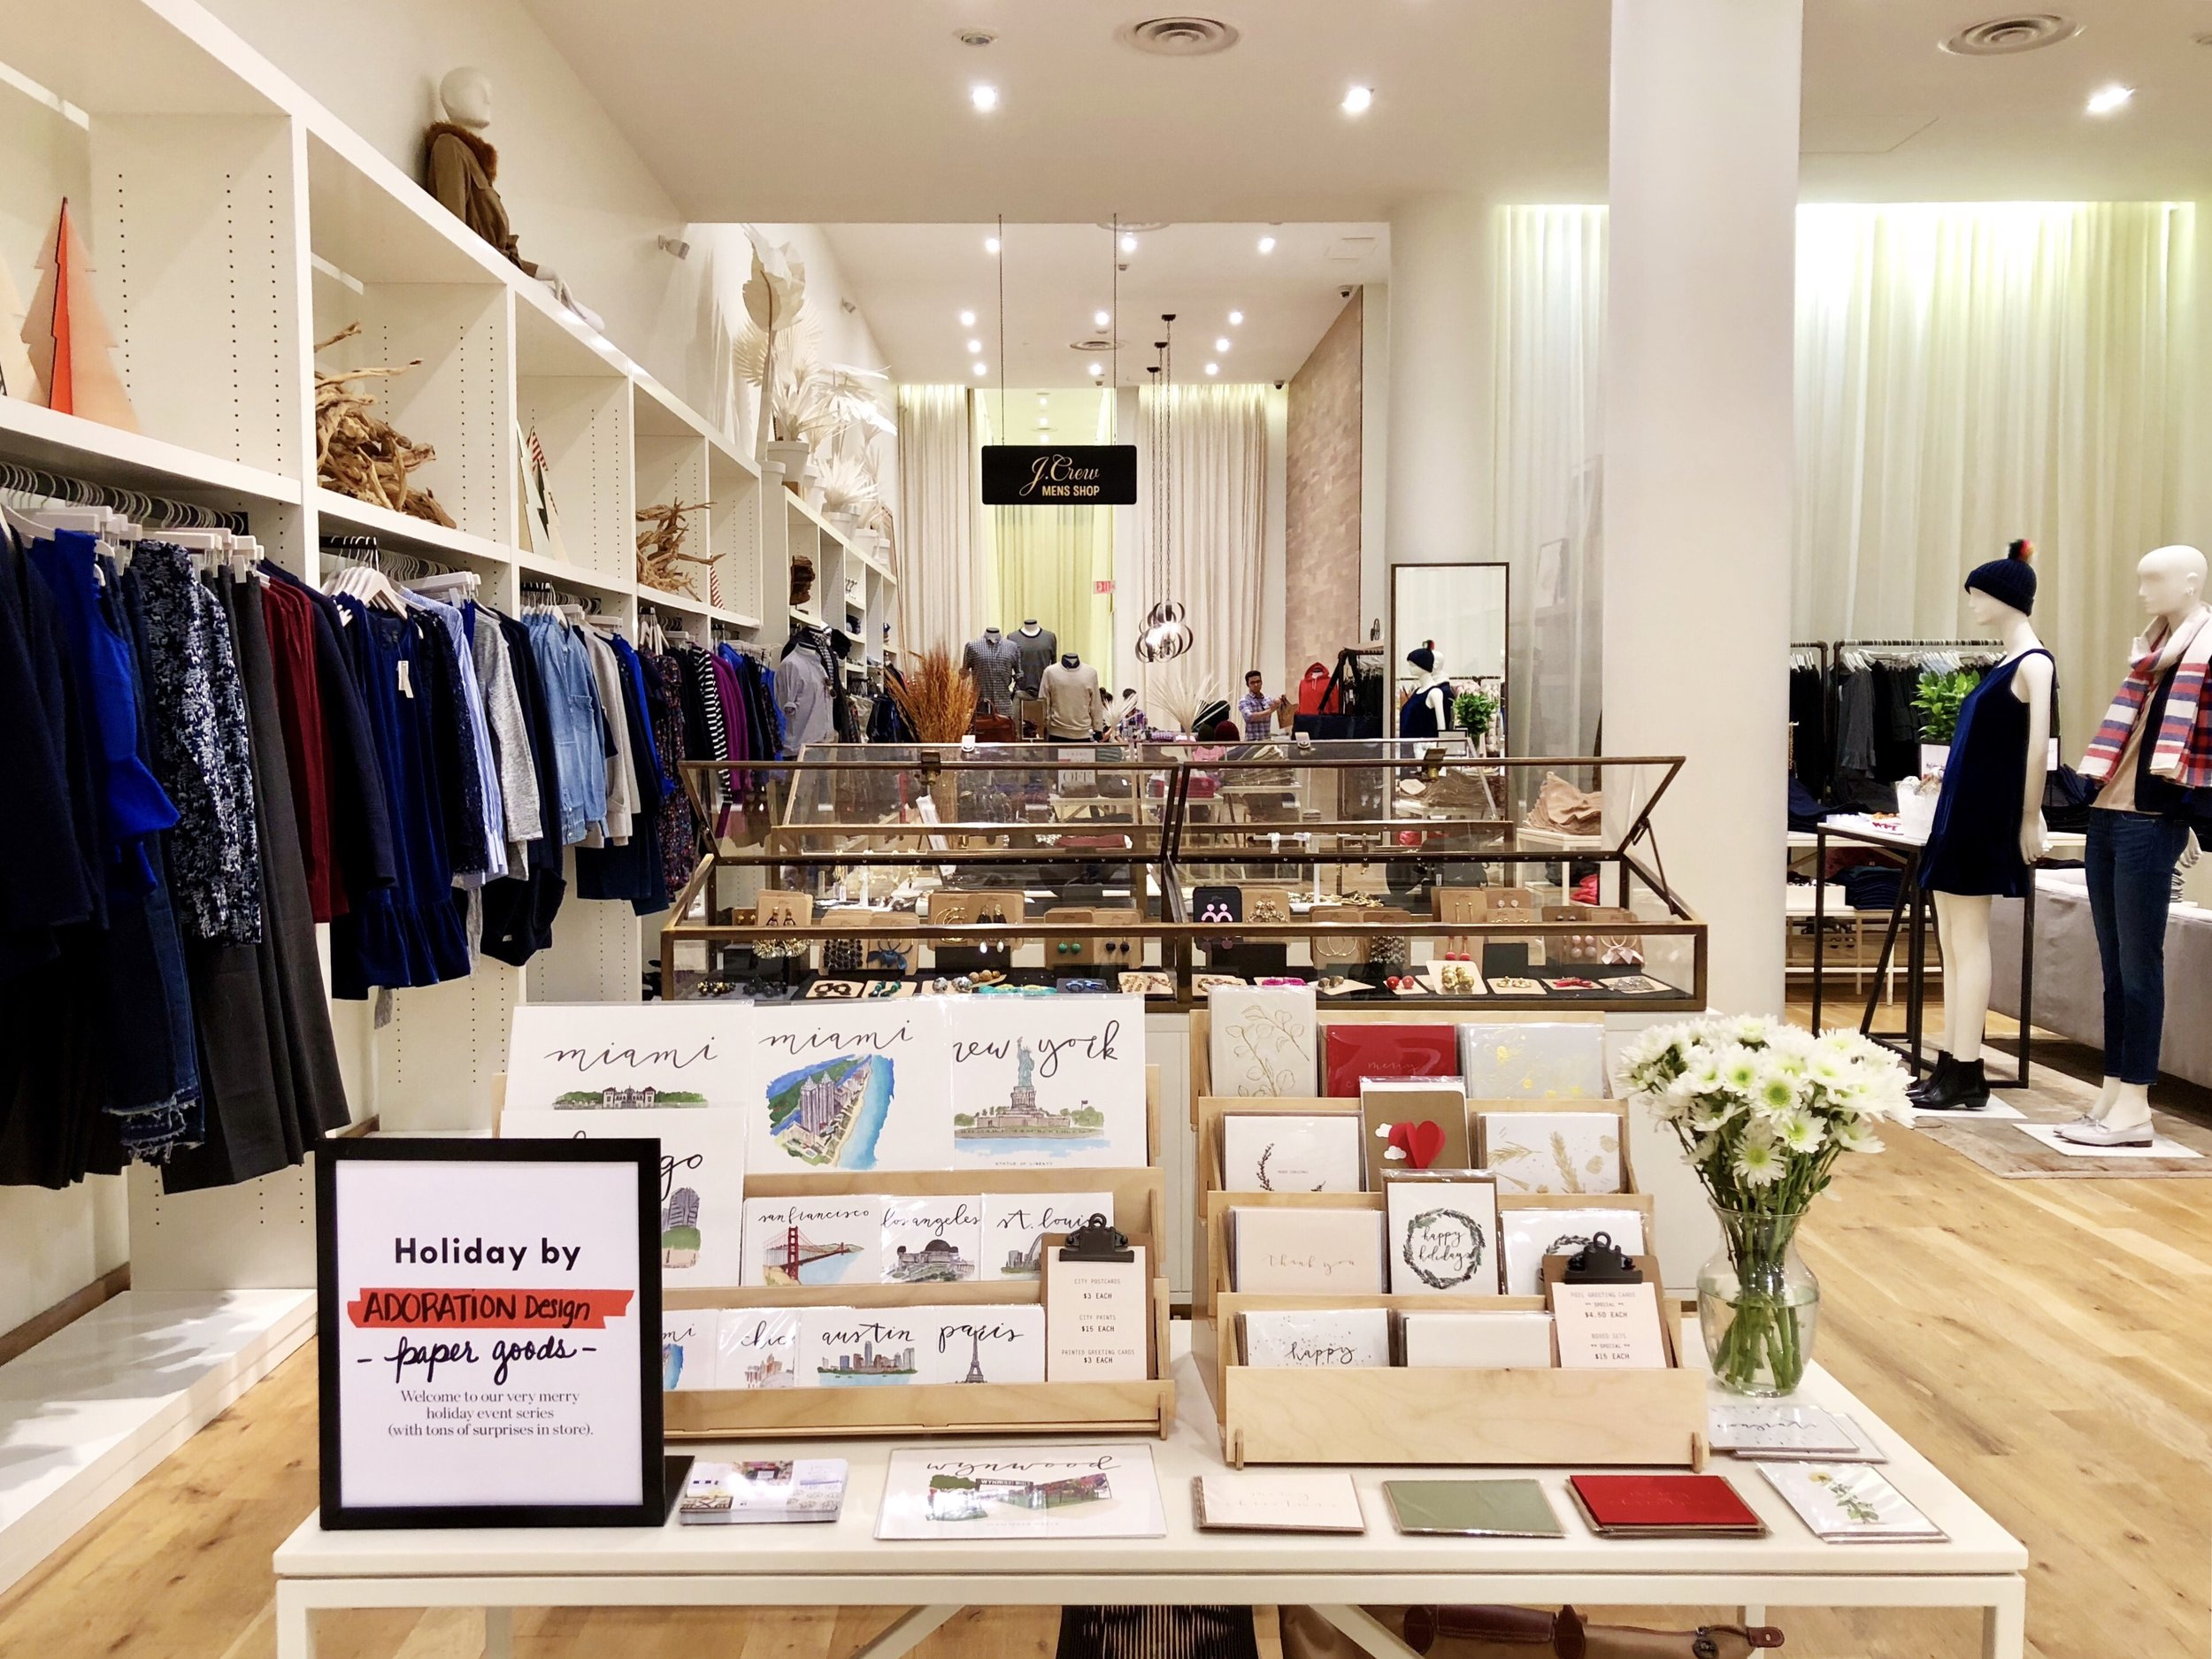 J.Crew Local Holiday Artisan Event December 21 2017